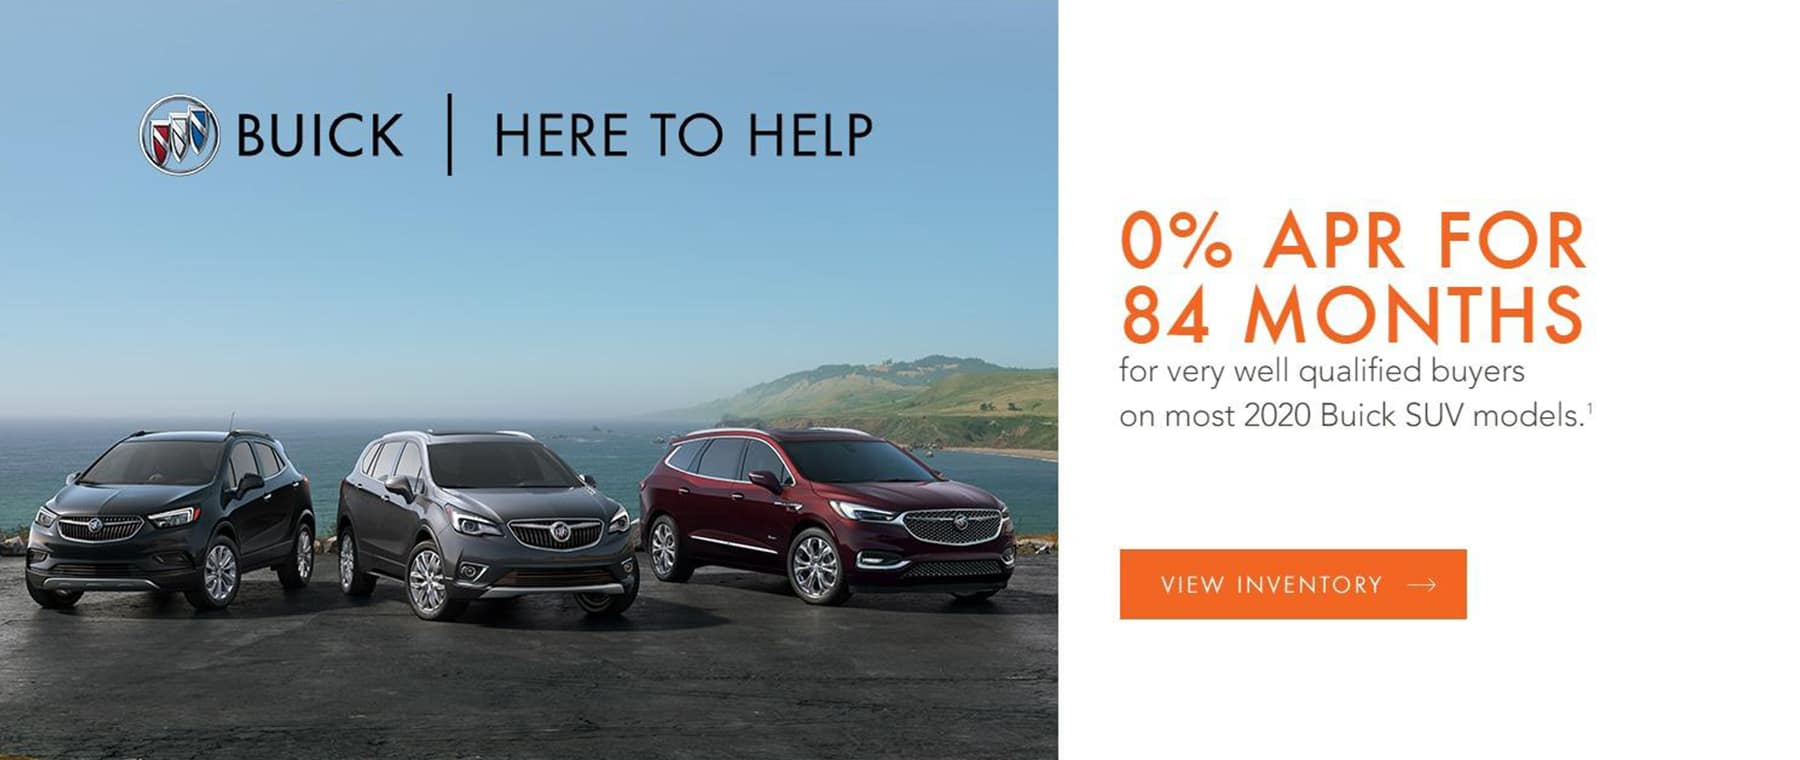 0% APR for up to 84 months on Most Buick SUV Models